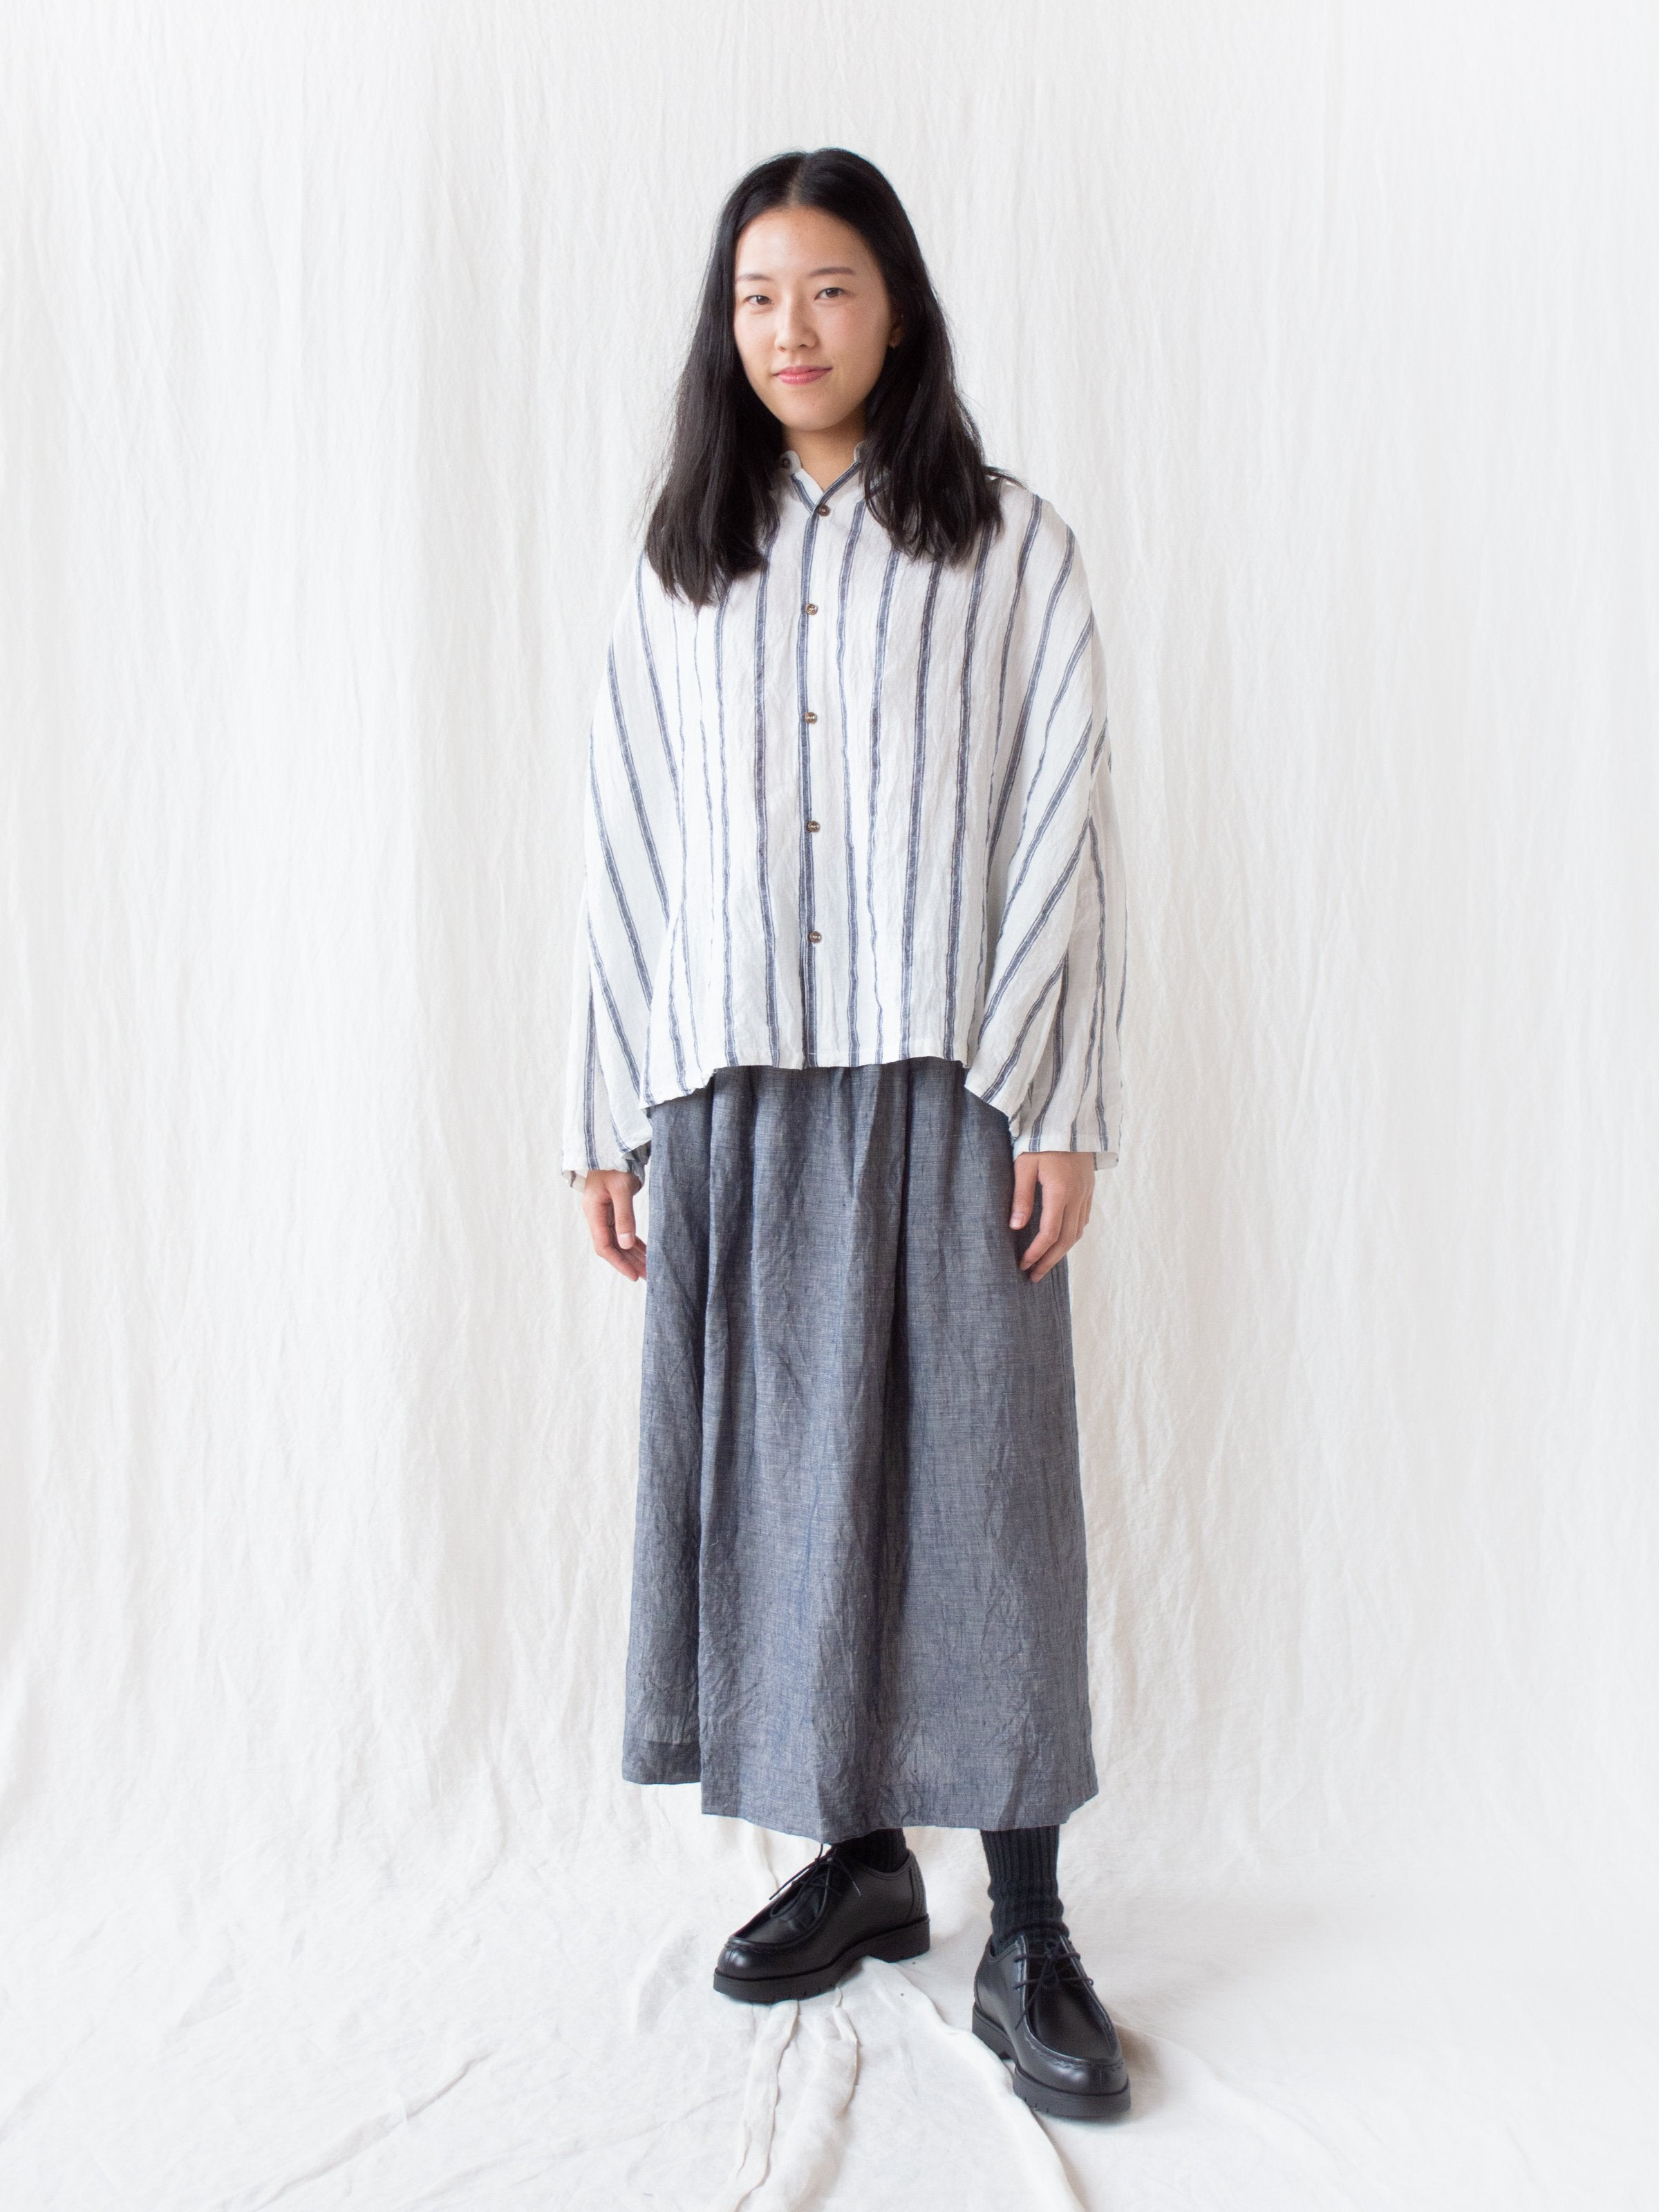 Namu Shop - Ichi Antiquites Linen Stripe Band Collar Shirt